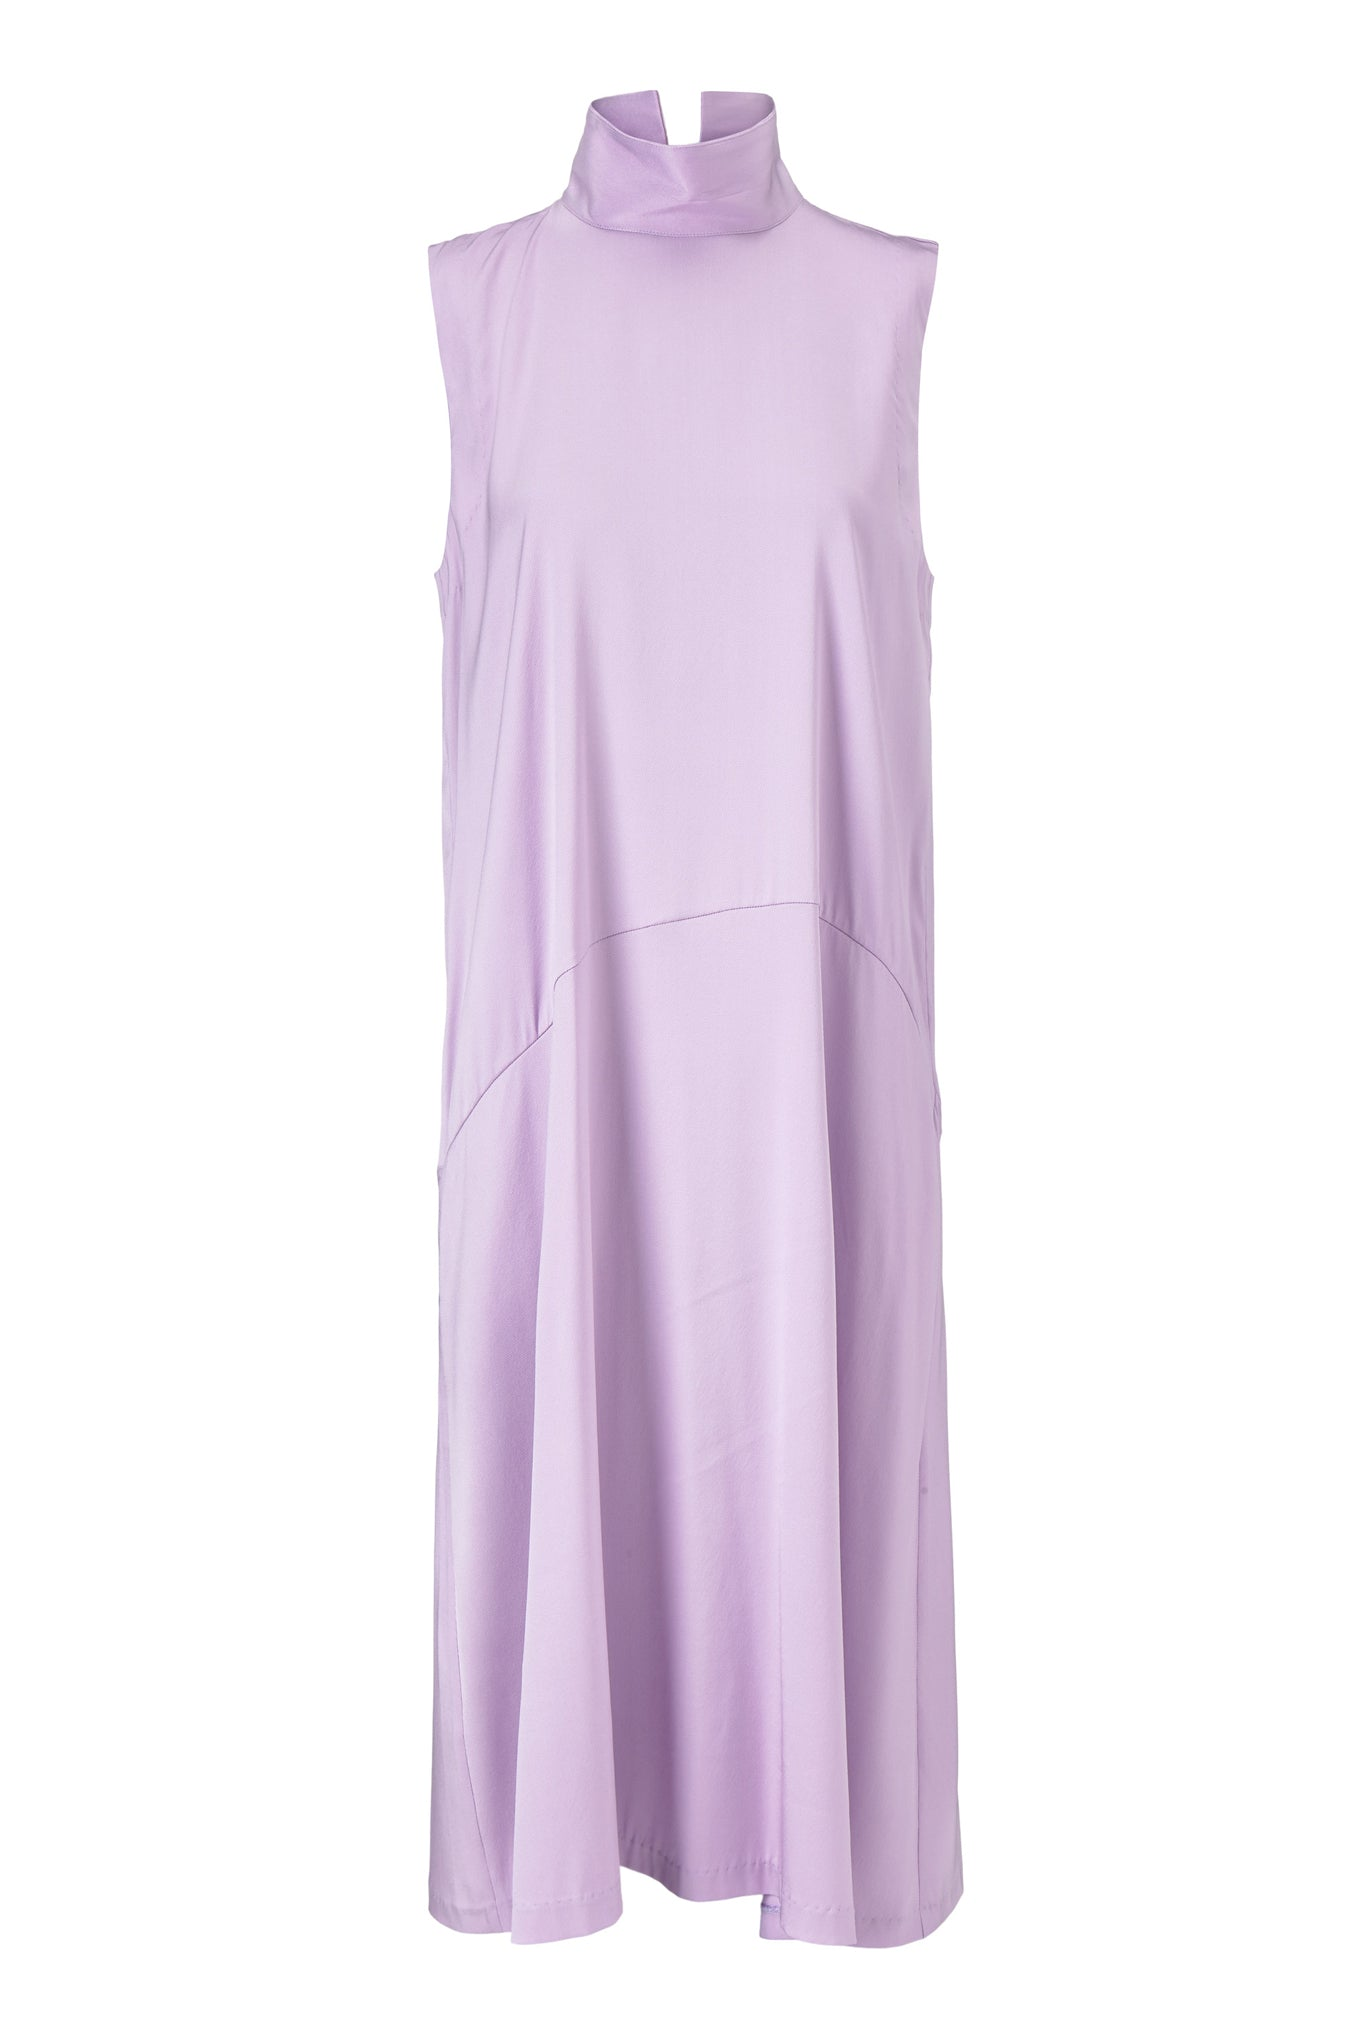 Vienna Dress - Lilac - Silk/Spandex Twill